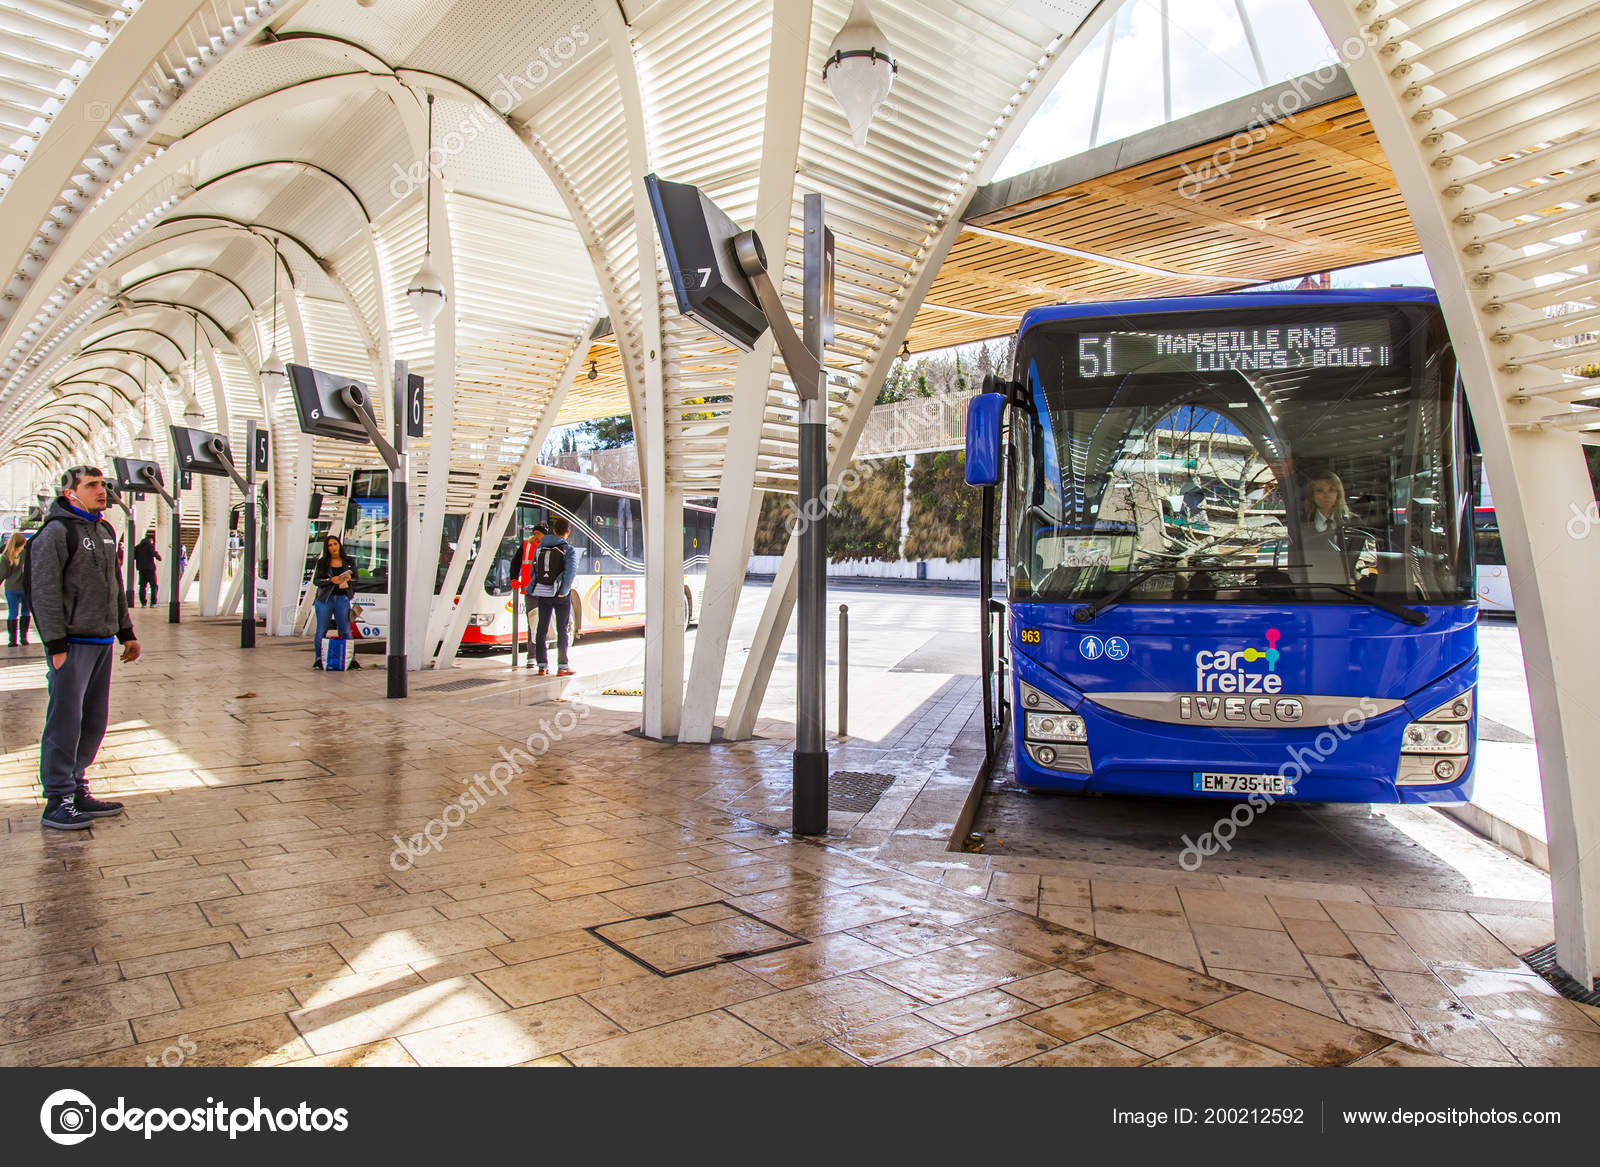 Aix provence france march 2018 buses wait passengers city - Salon de provence aix en provence bus ...